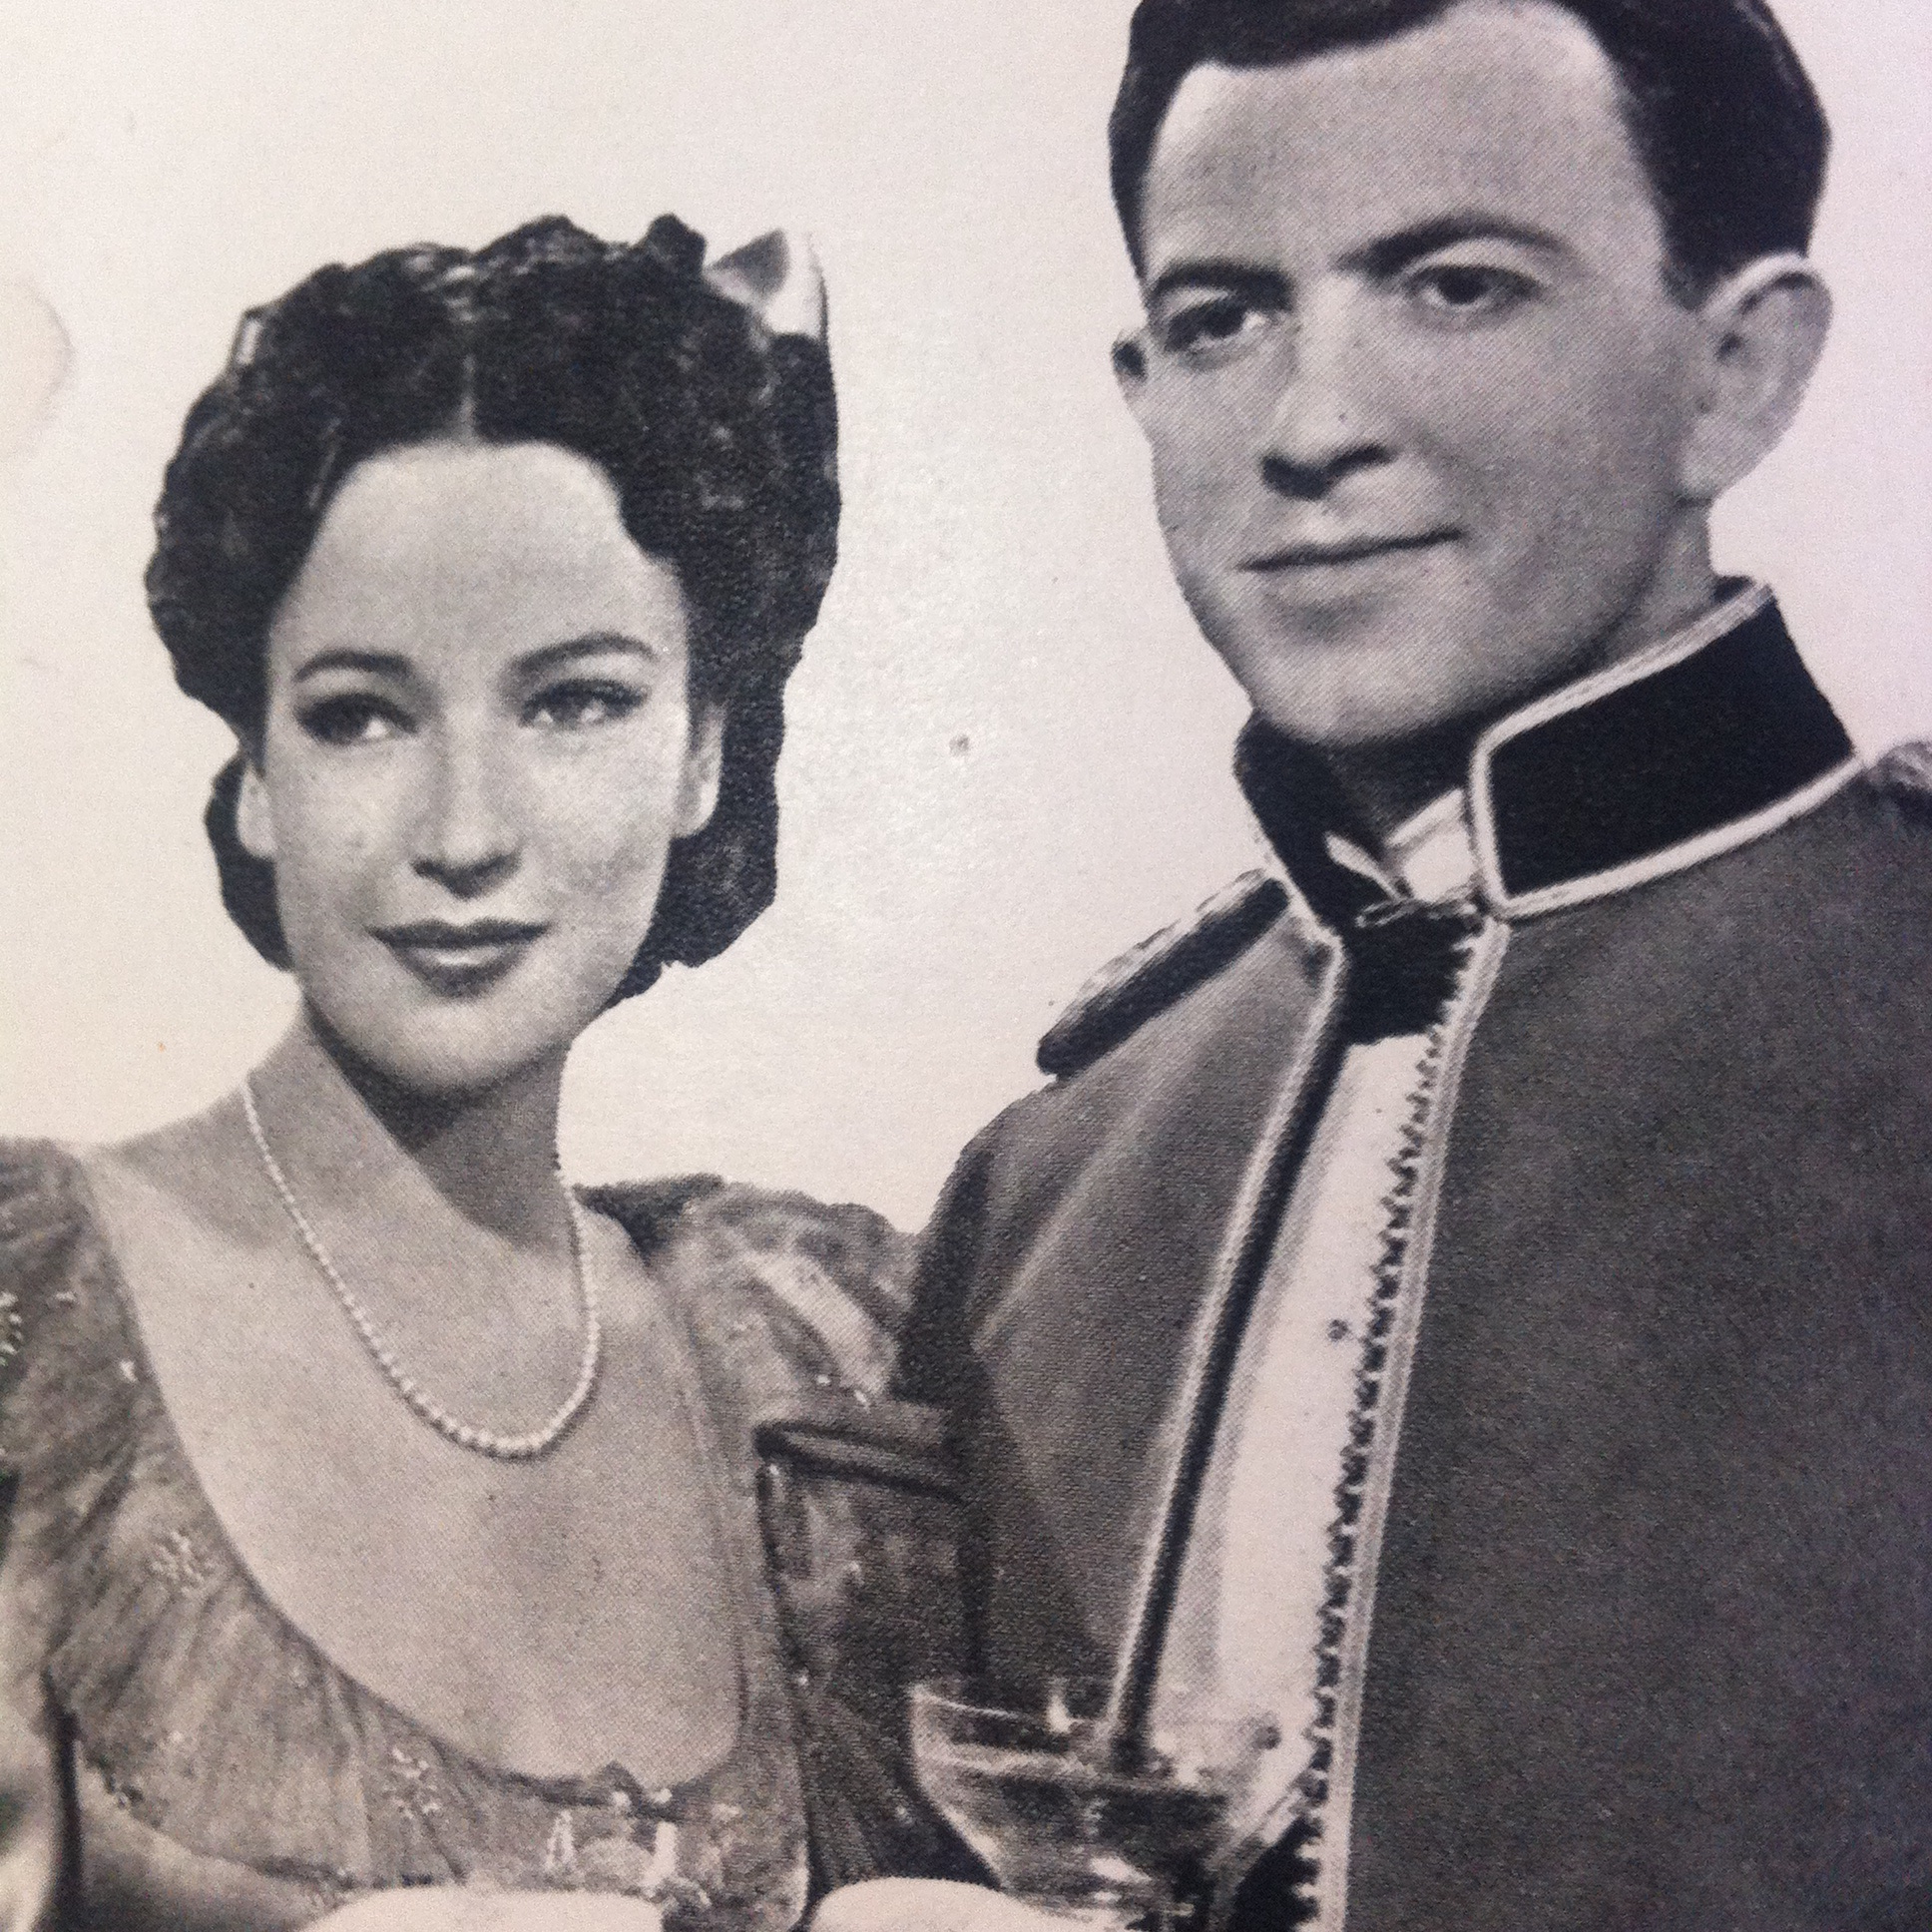 John Clements and June Duprez in The Four Feathers (1939)